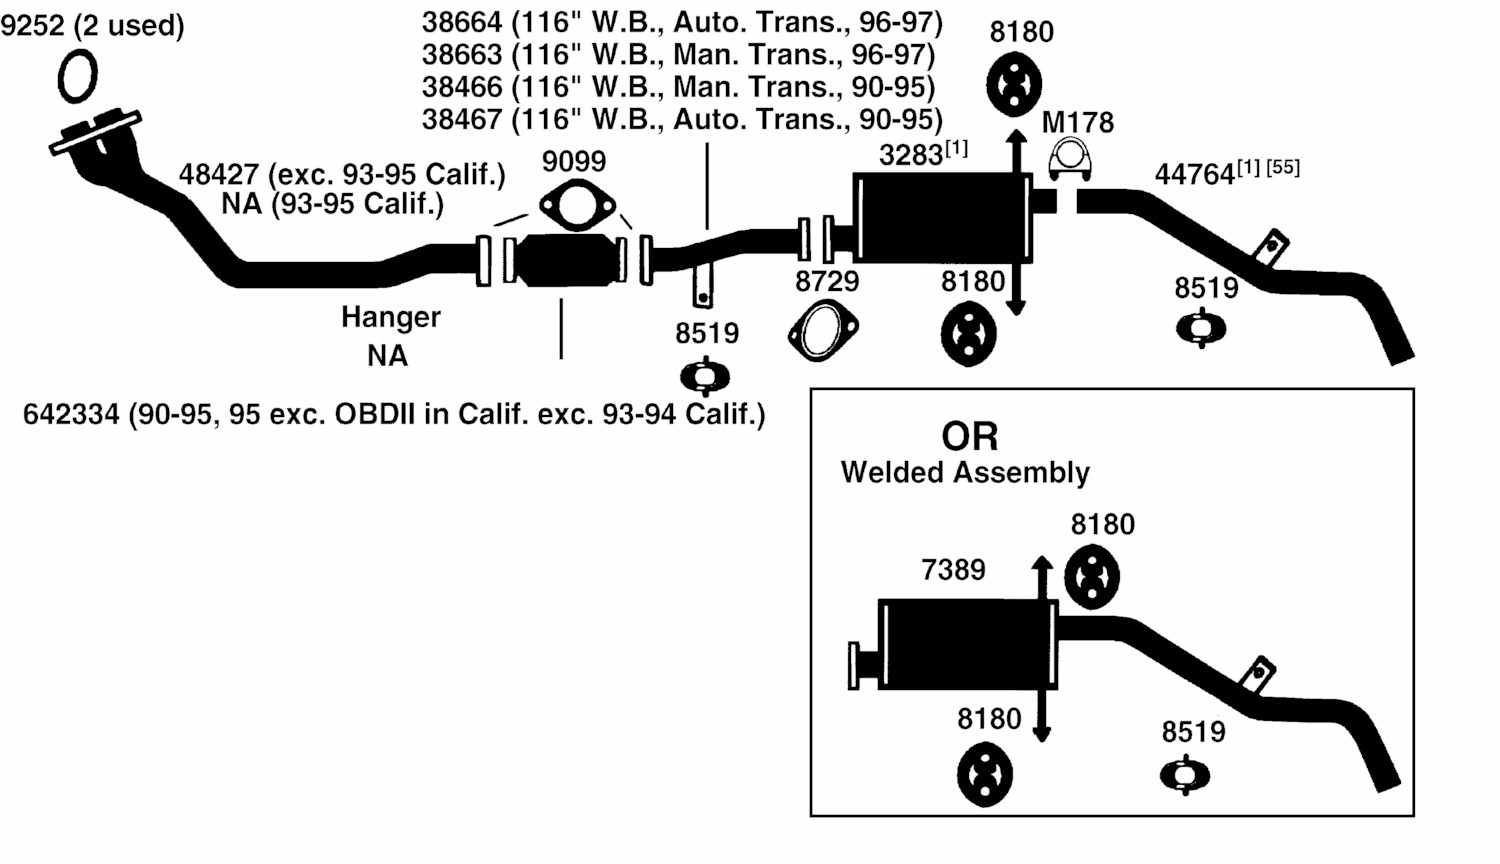 Nissan Datsun Pickup D21 Hardbody Exhaust Diagram From